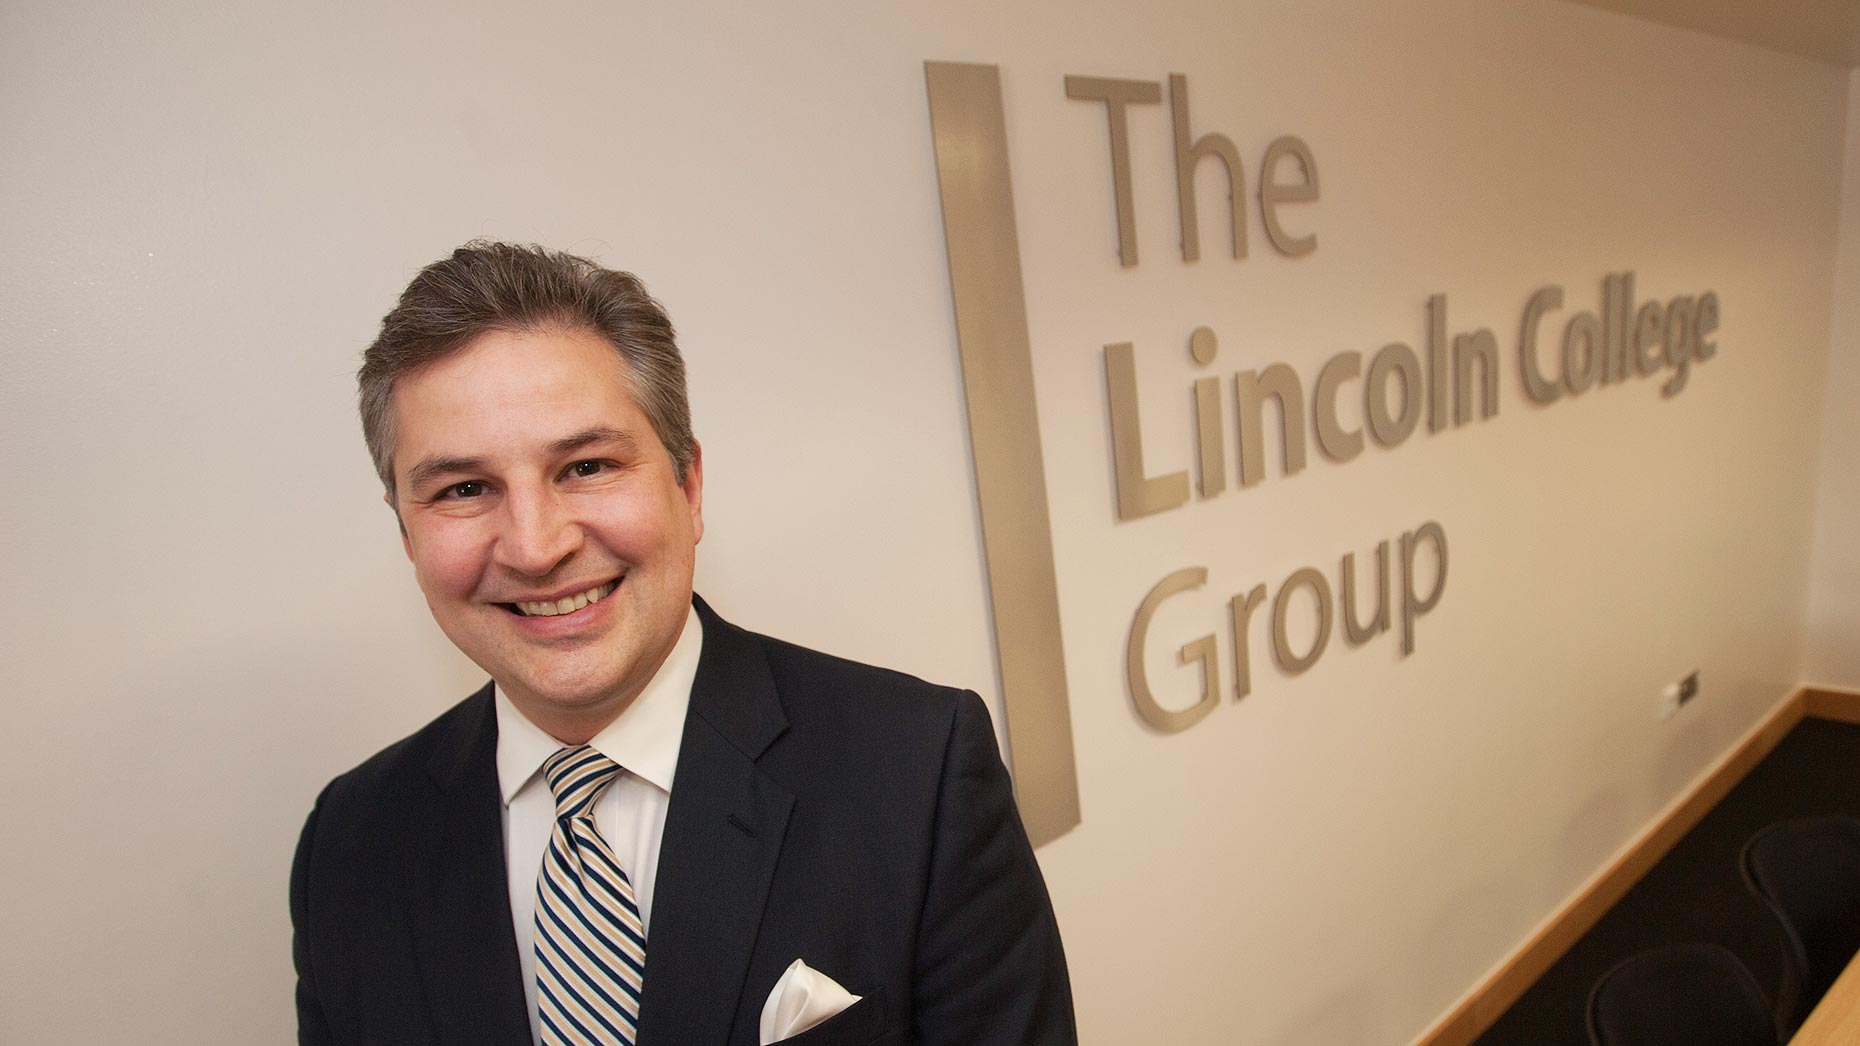 Gary Headland, CEO of the Lincoln College Group. Photo Steve Smailes for Lincolnshire Business